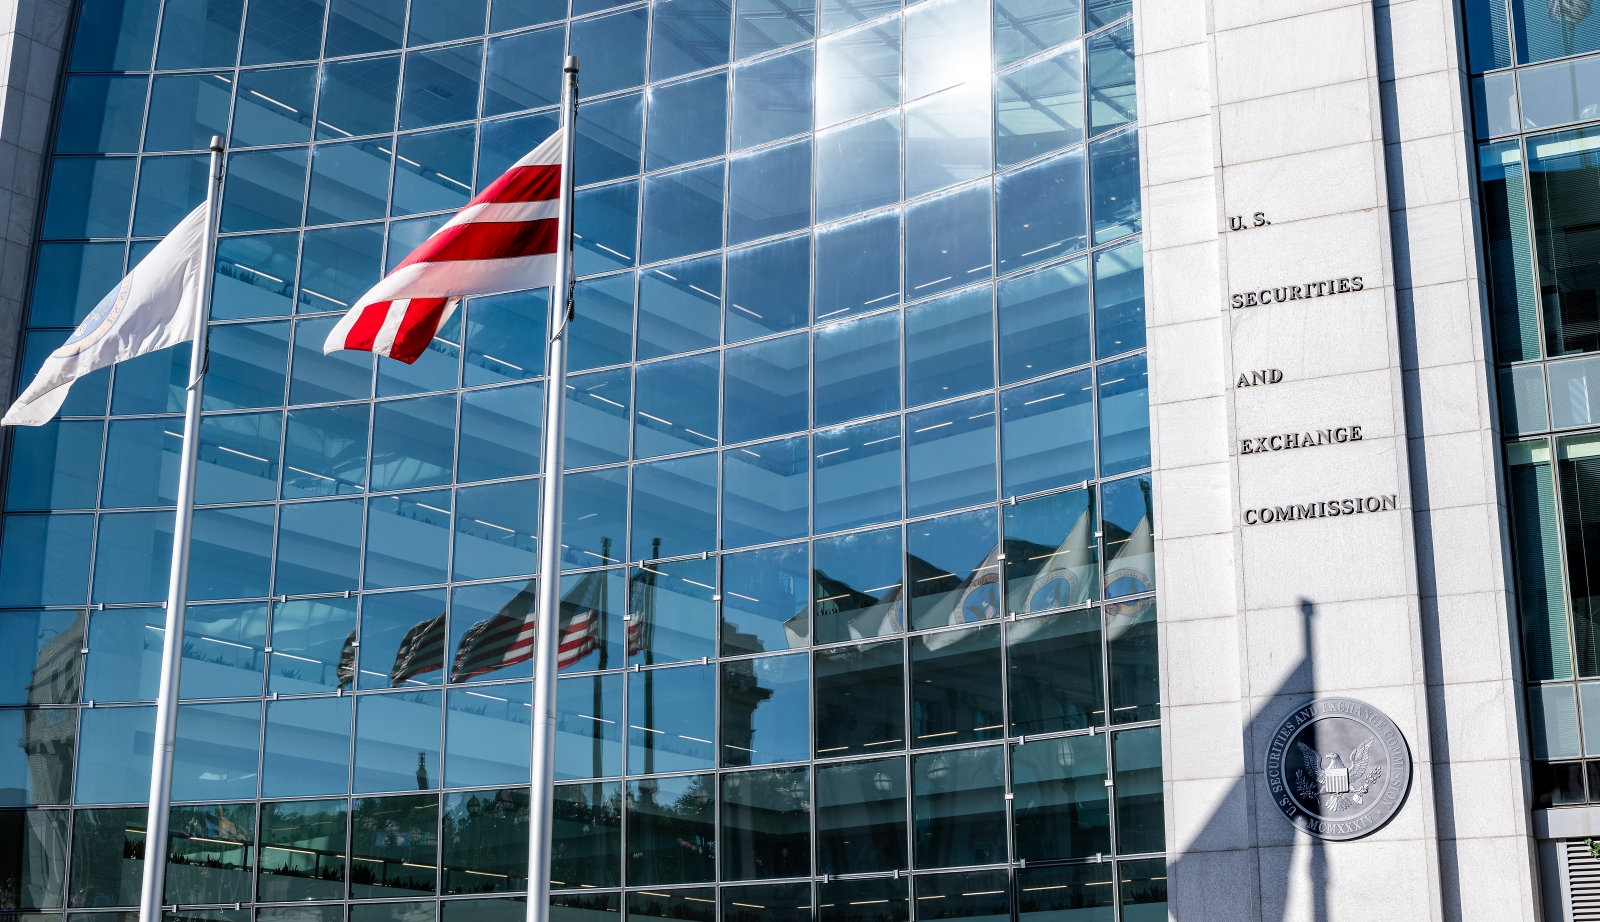 SEC fines Block.one $24 million for unregistered ICO worth billions | DeviceDaily.com